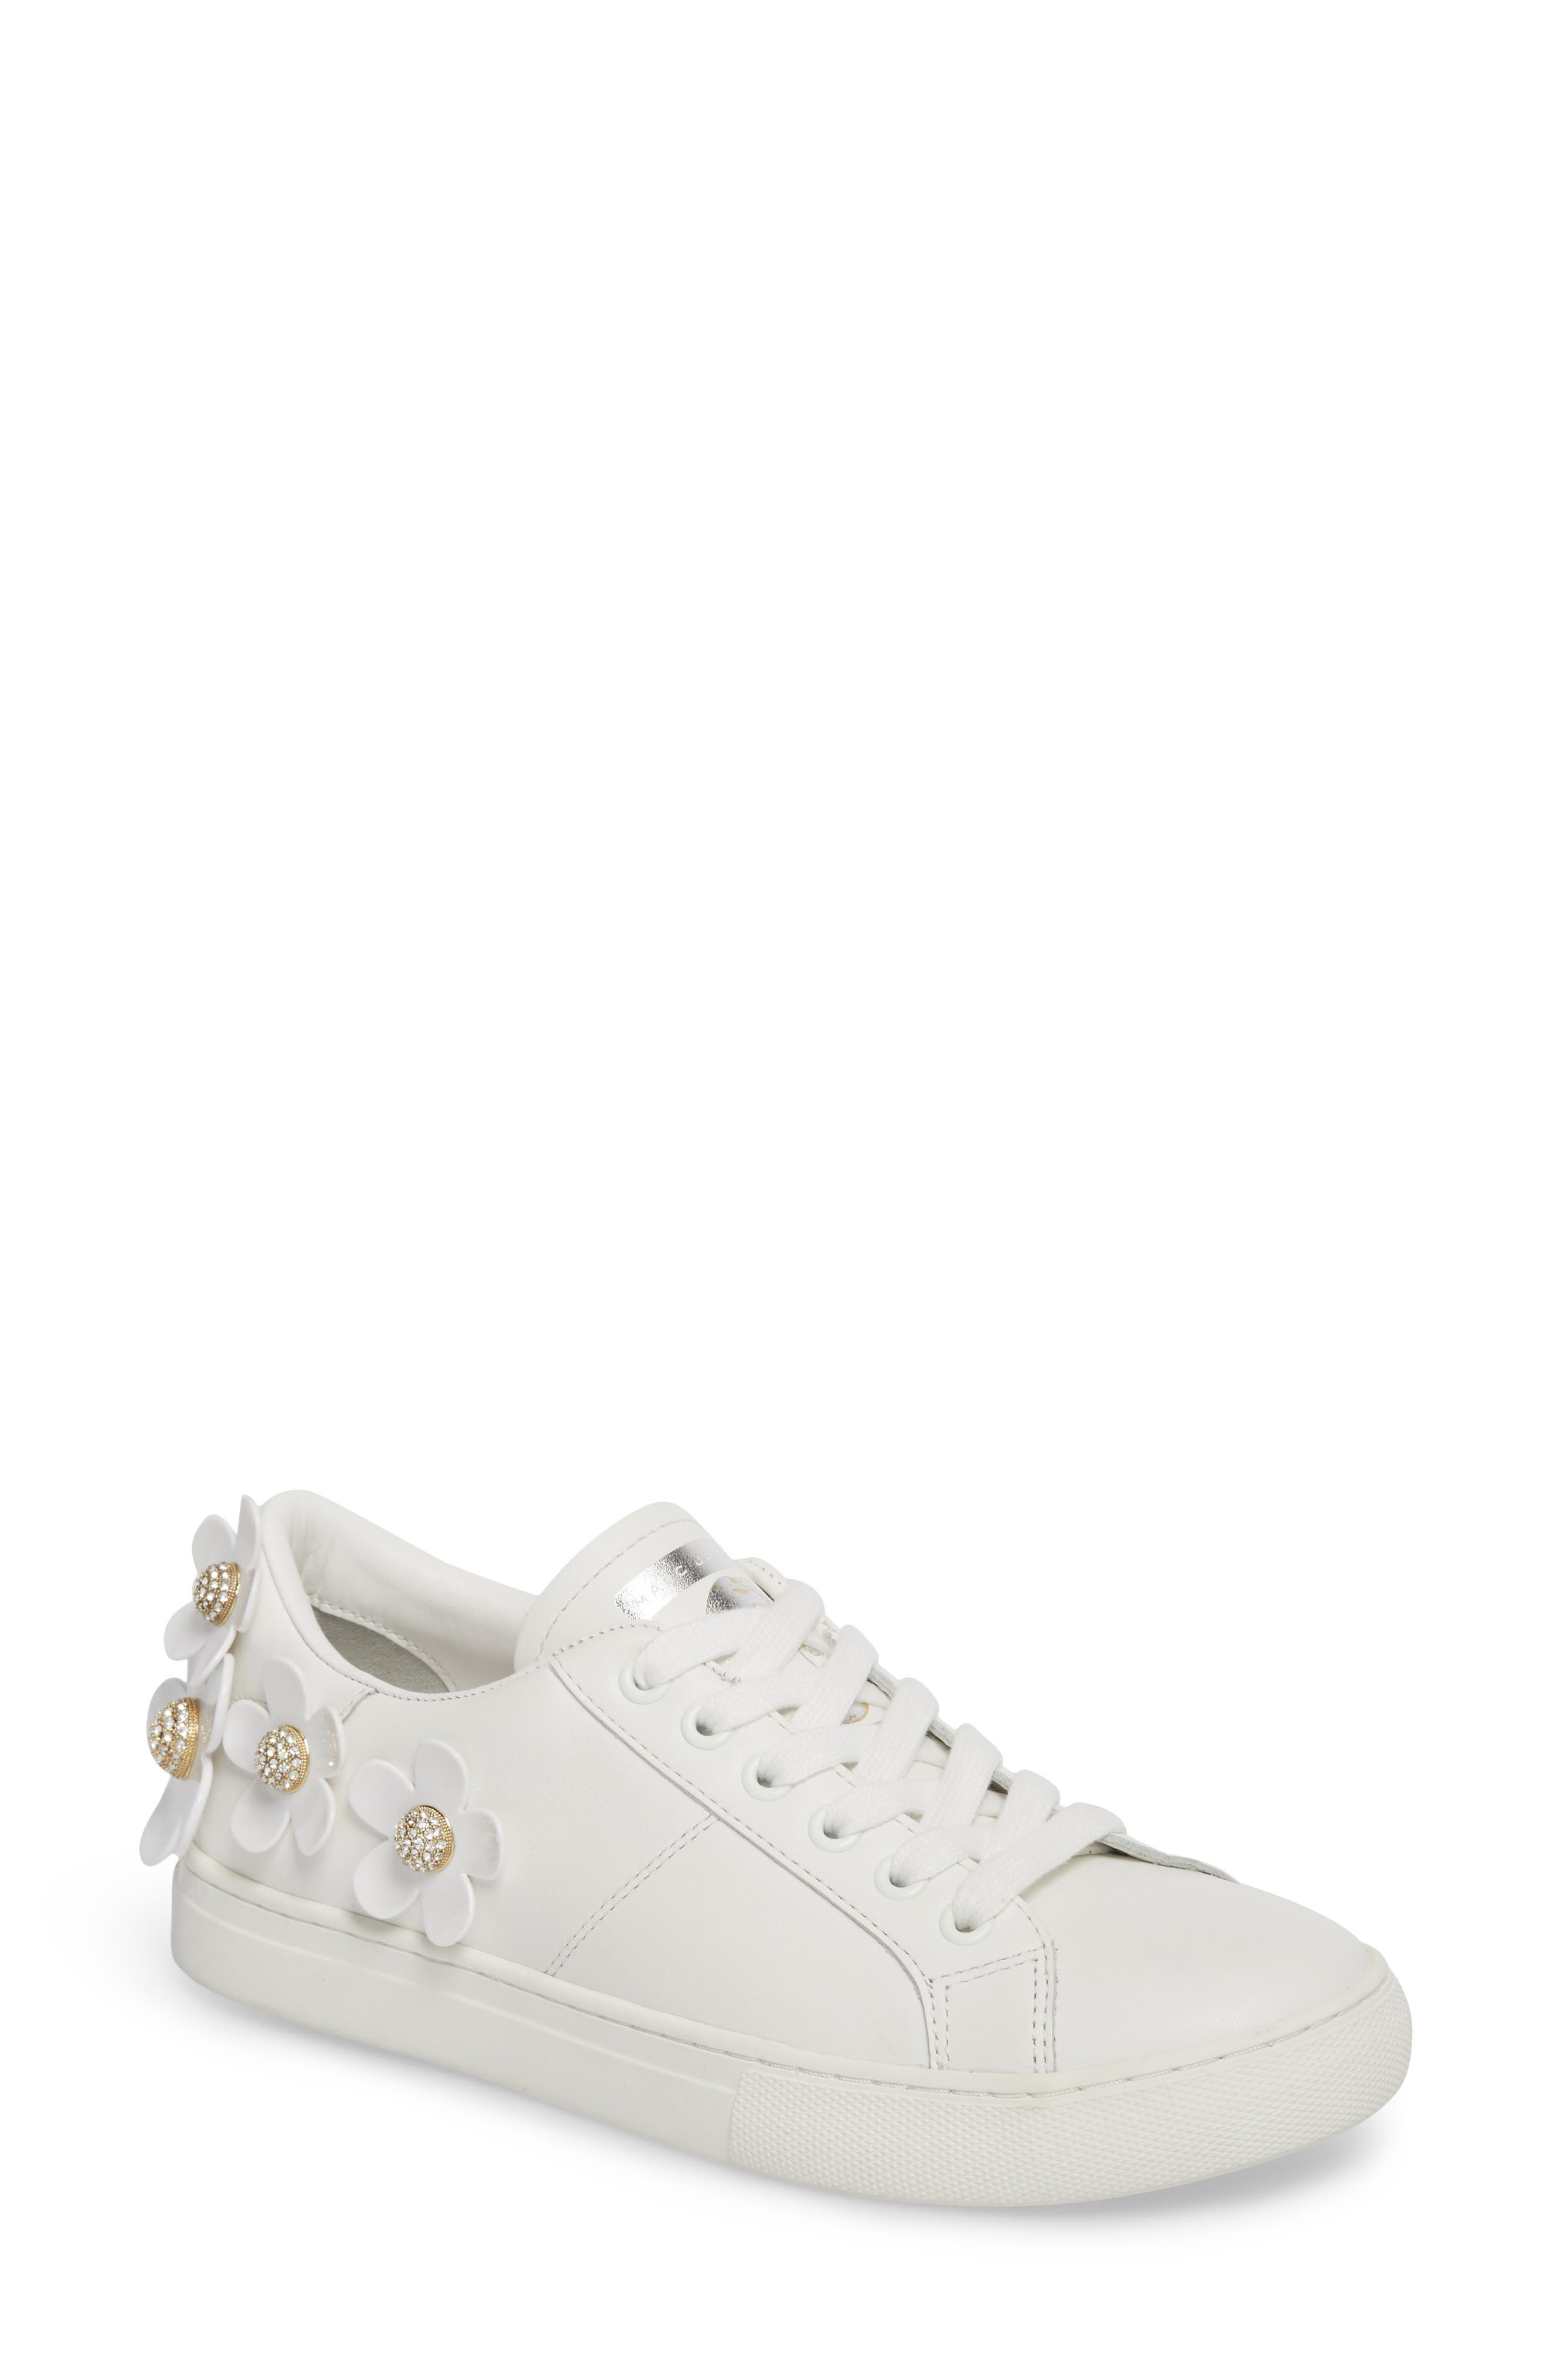 MARC JACOBS Daisy Studded Floral Sneaker (Women)